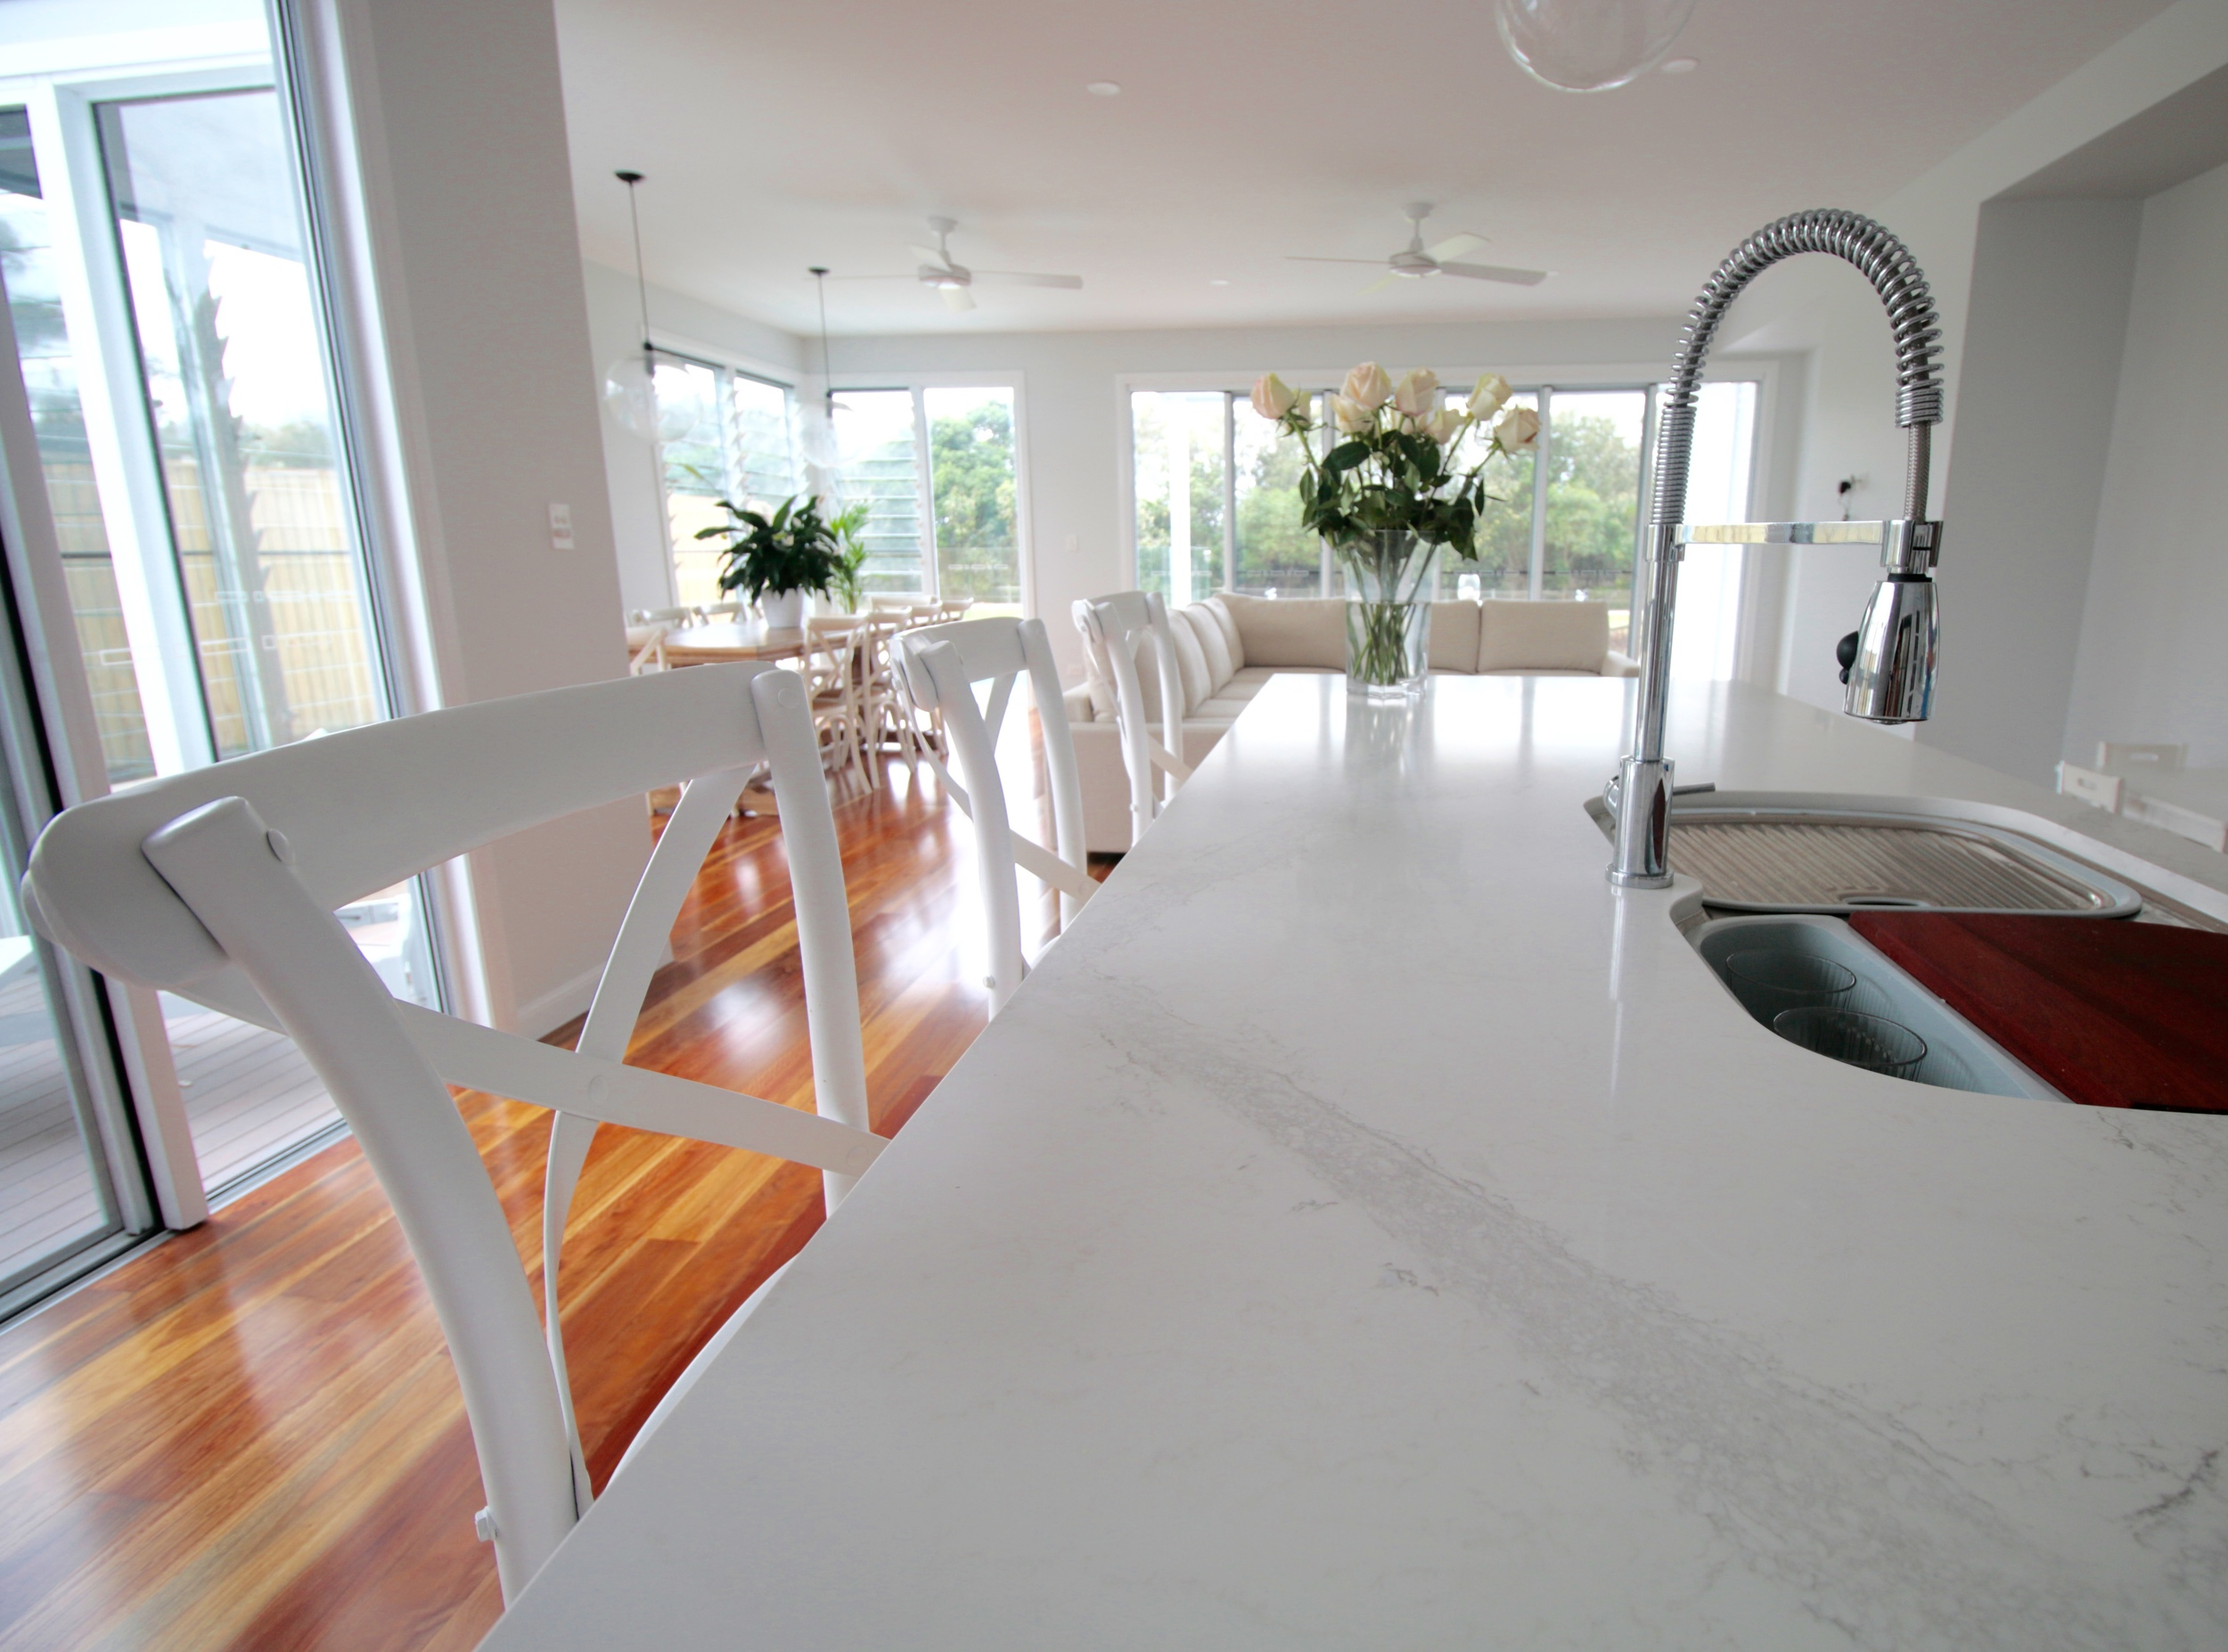 Interior Photography & Styling Private Residence - Casuarina, NSW   Colour Consultant - Sonya Romeo,  Lee & Allan Design